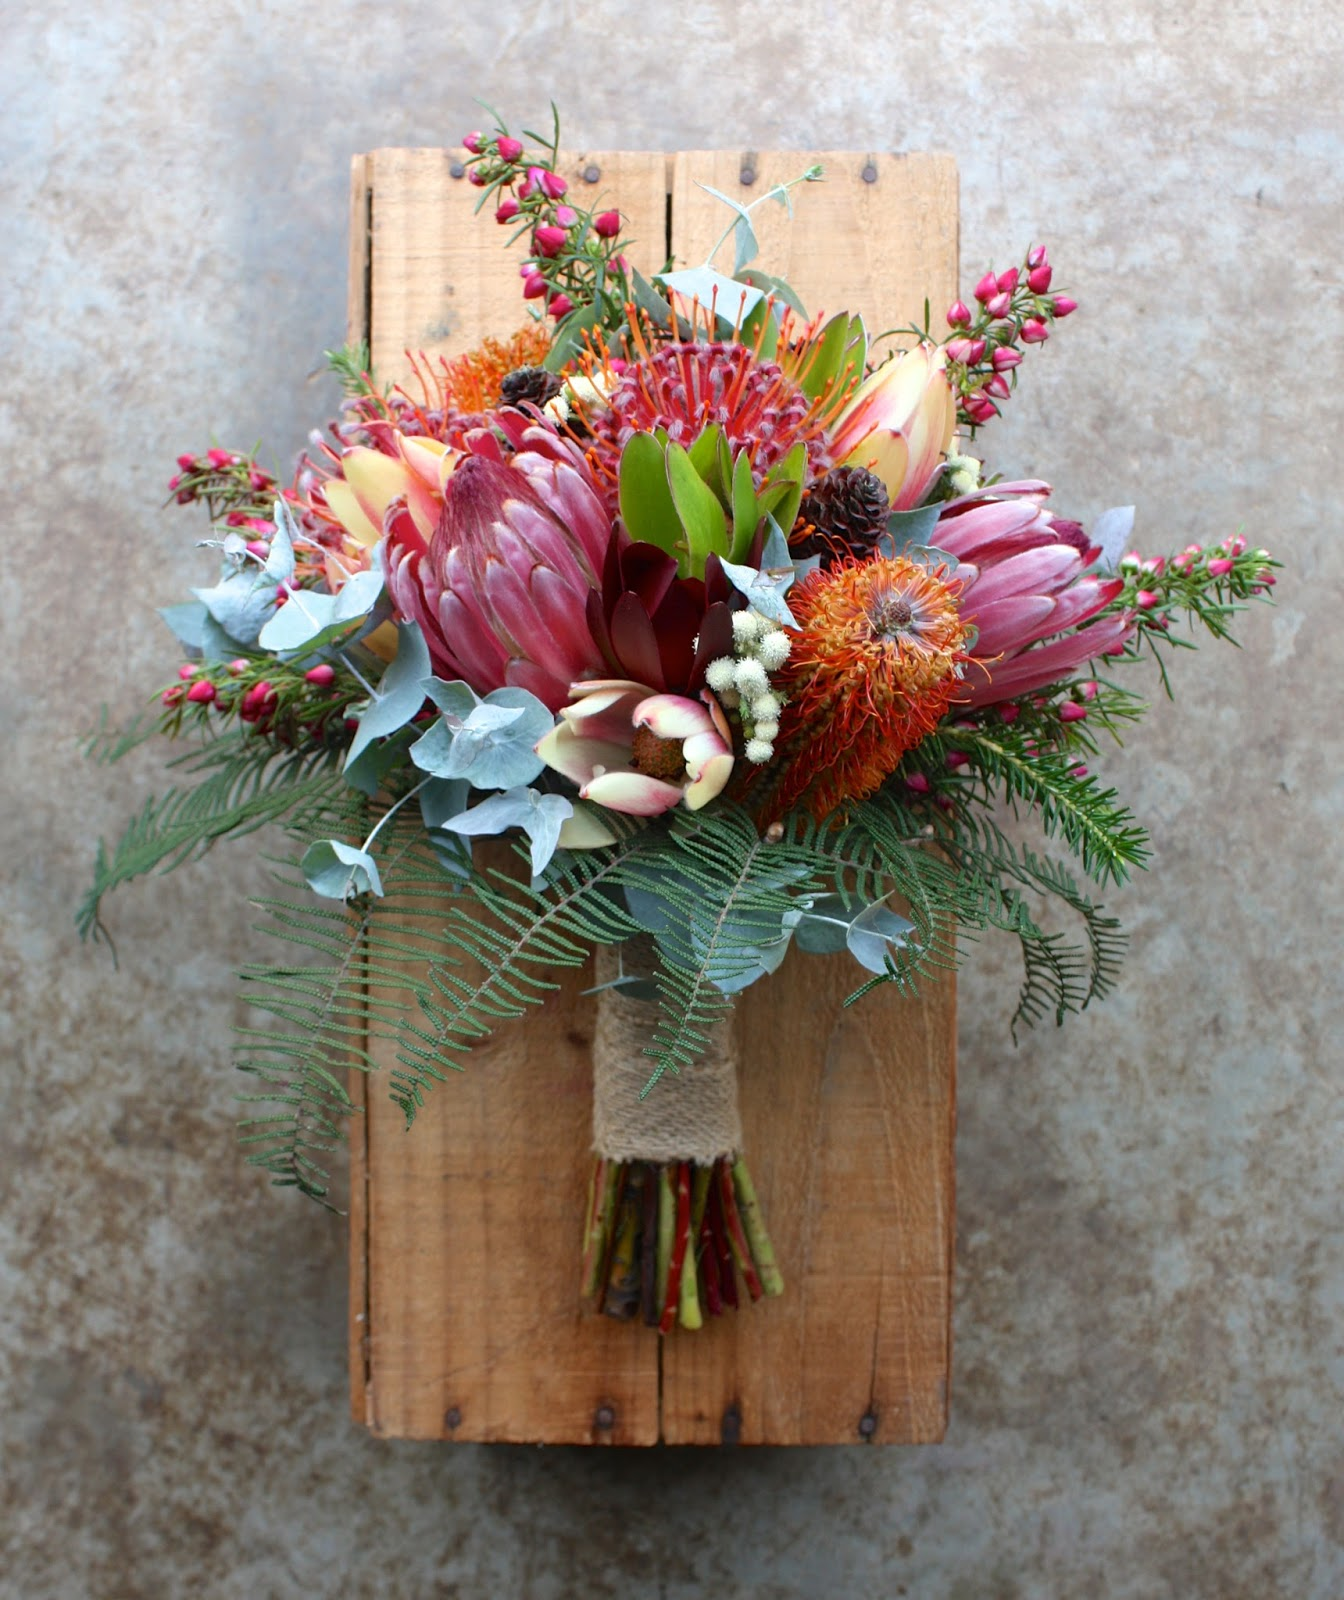 Wedding Bouquets For December : Swallows nest farm colourful summer wedding in early december